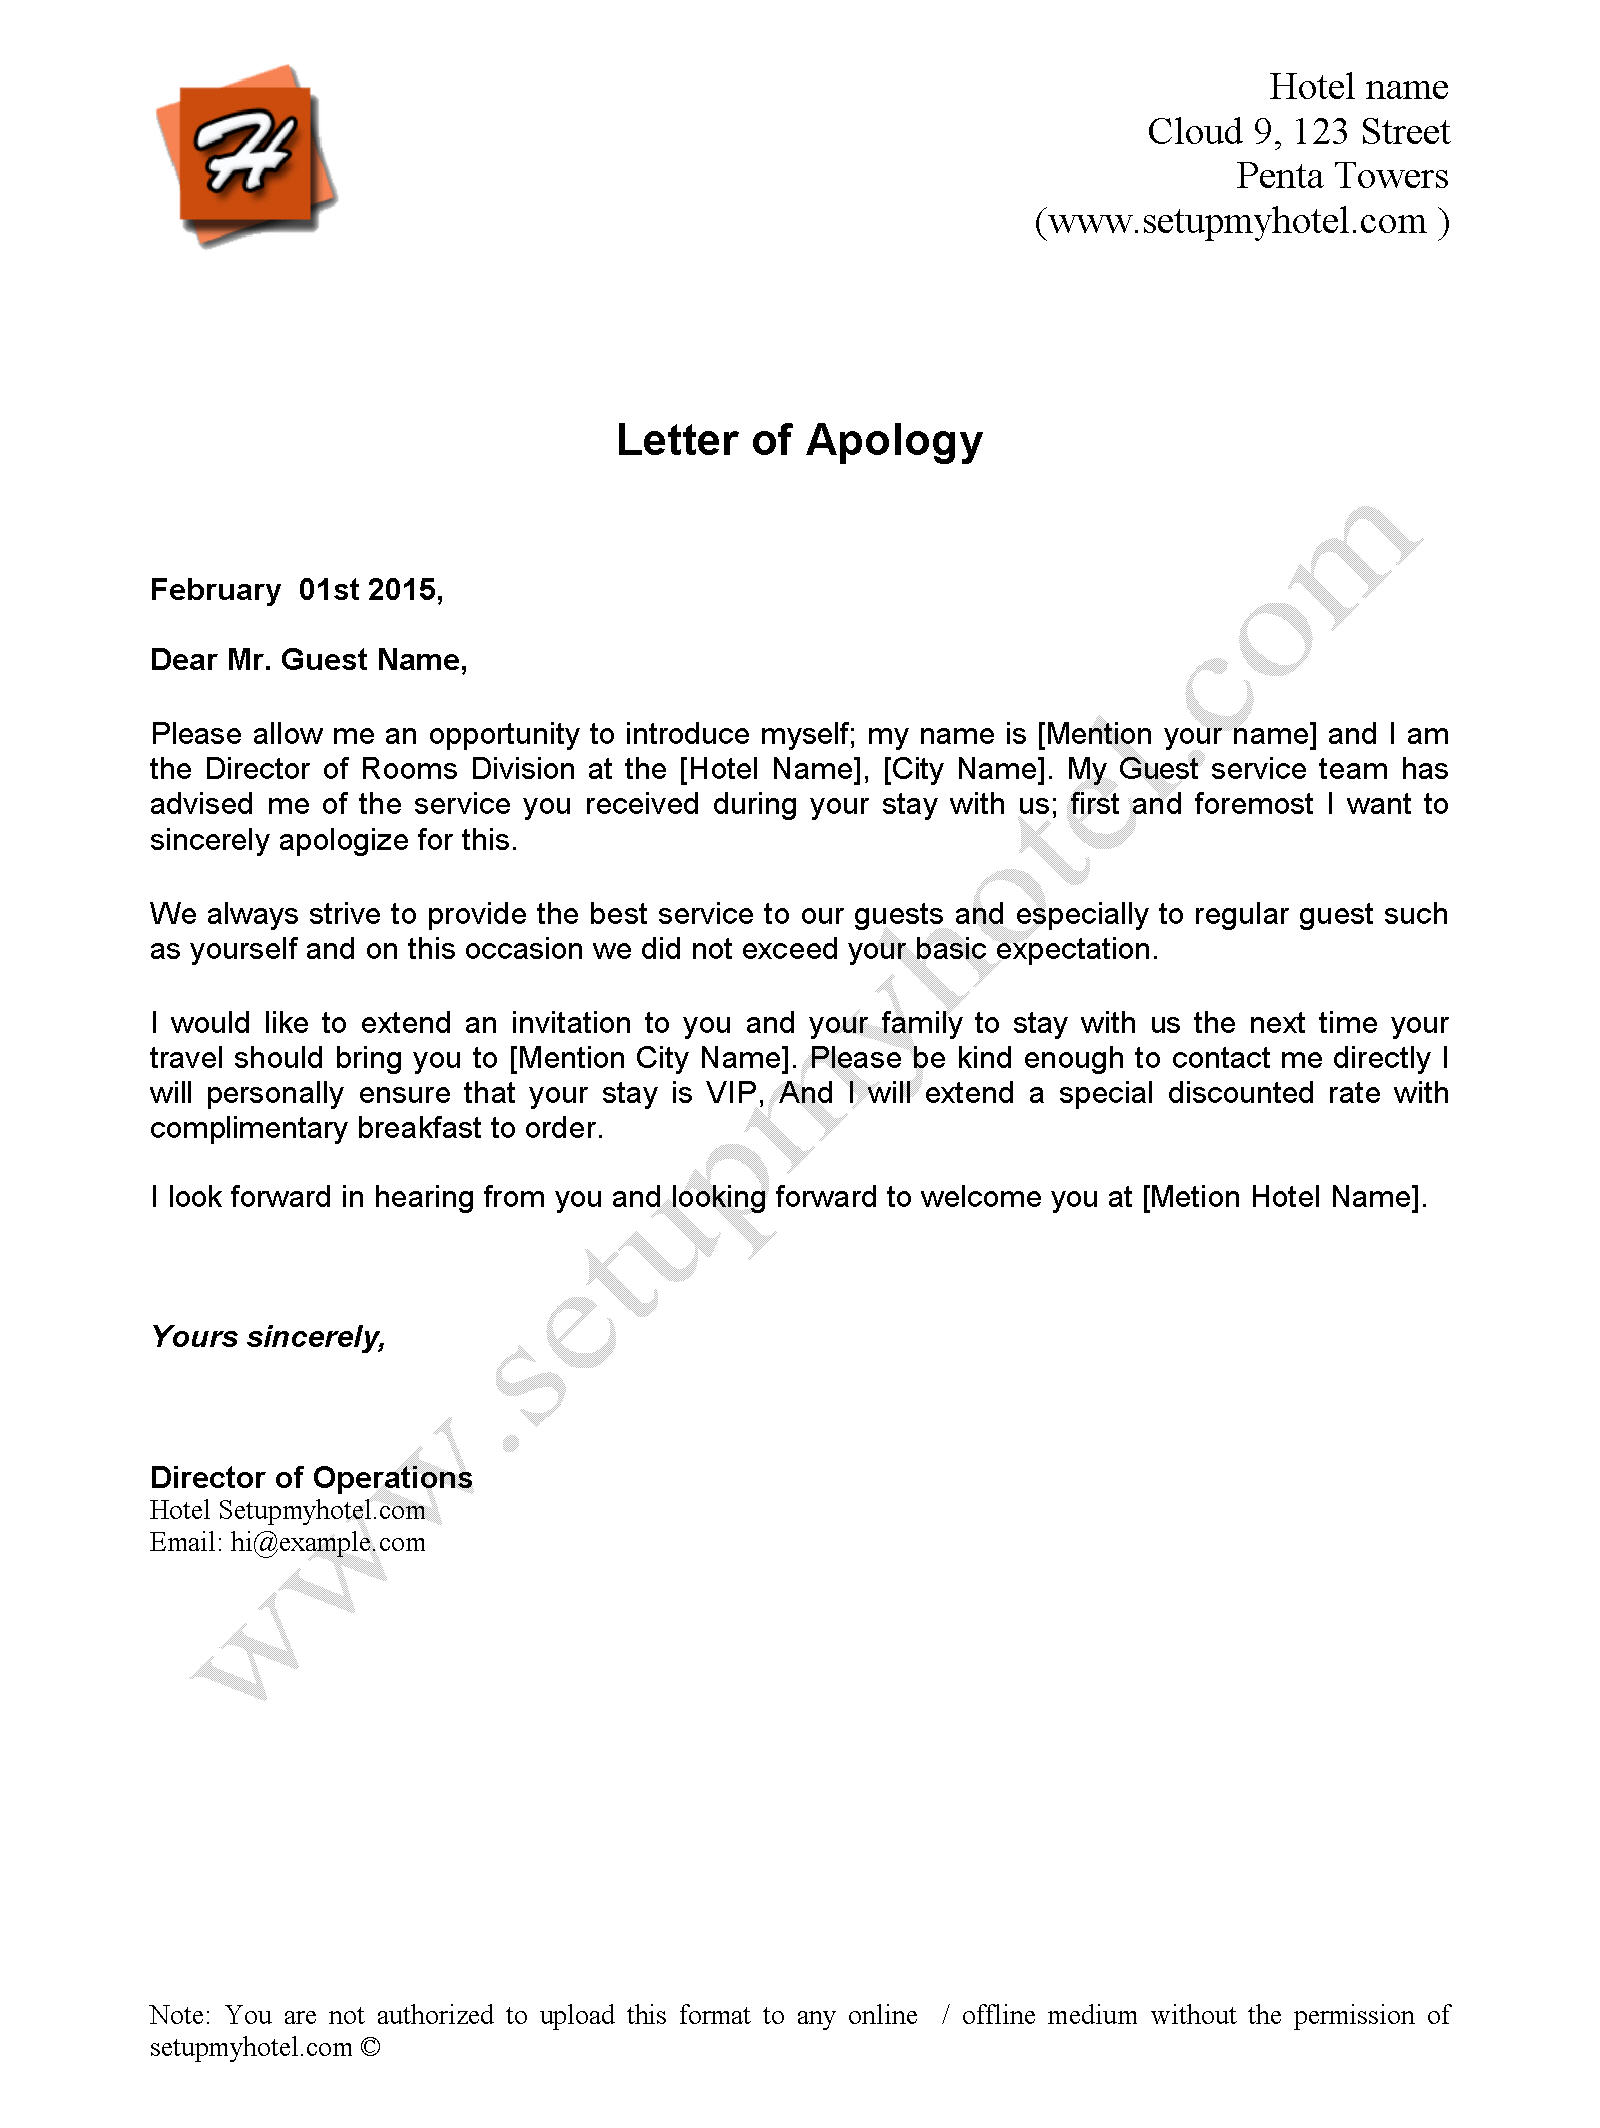 Essay on apology apology letter sample send to hotel guests uc essay apology letter sample send to hotel guests apology letter to hotel guest spiritdancerdesigns Choice Image